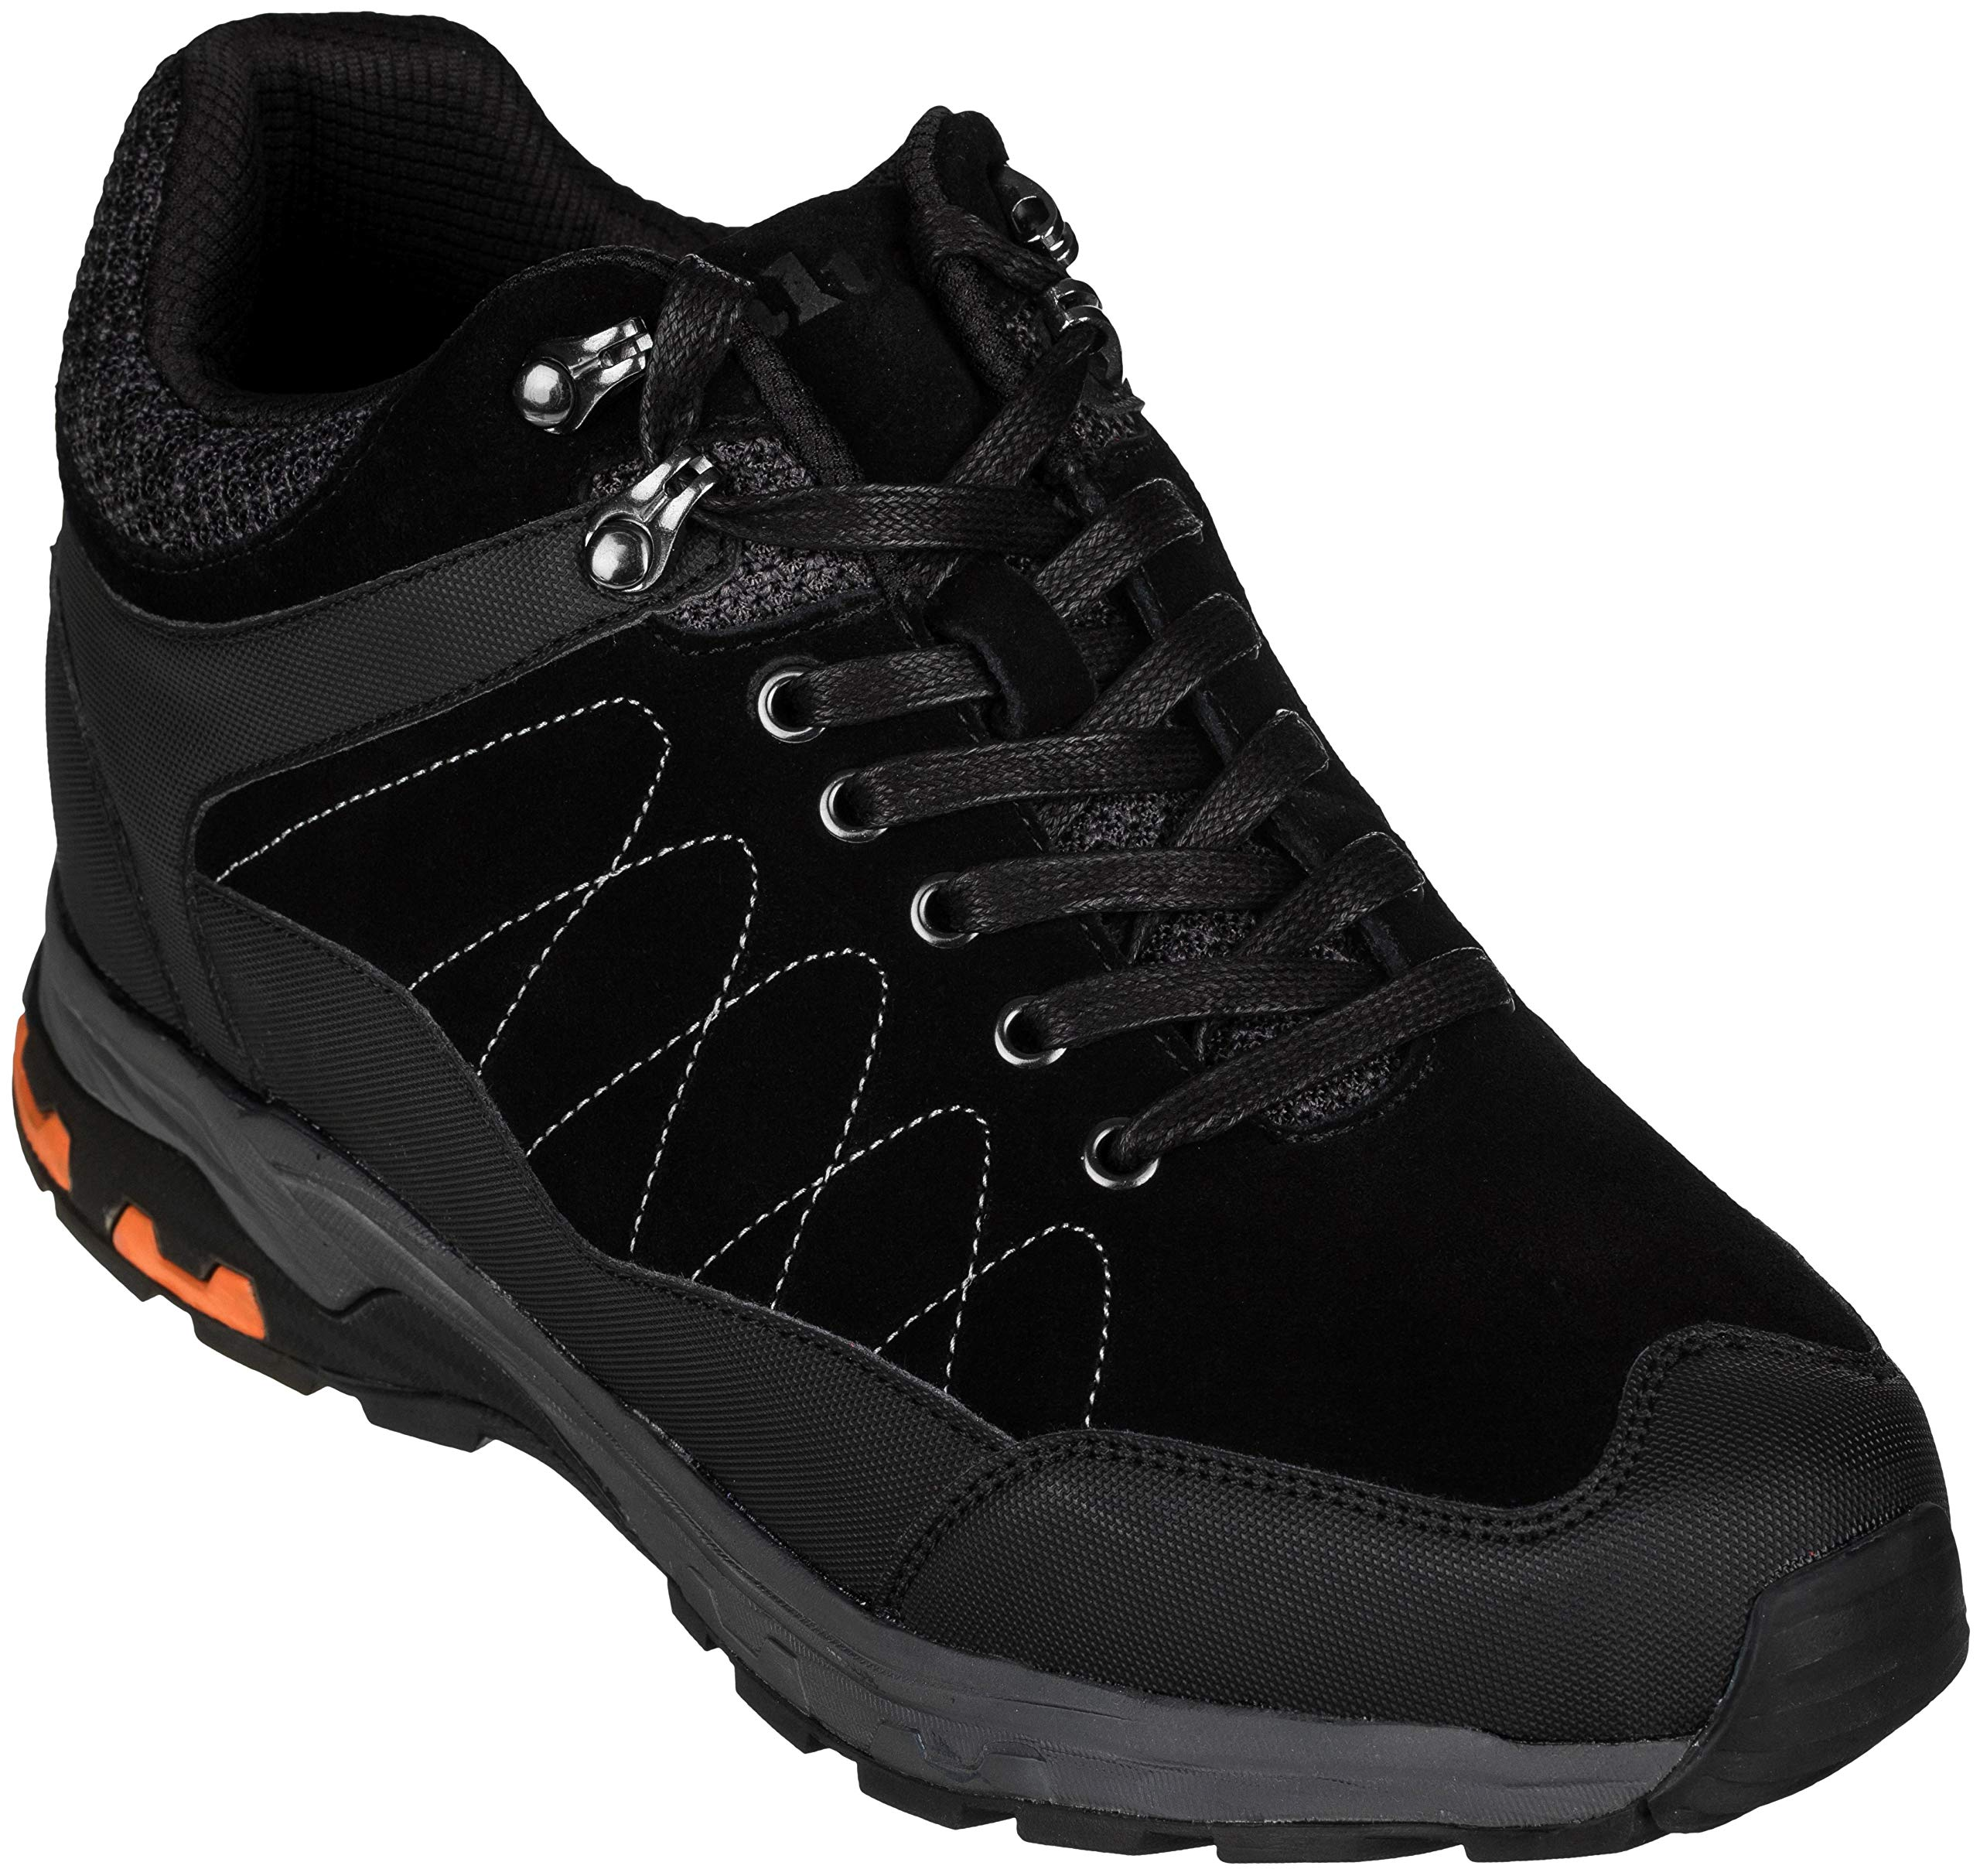 CALTO Men's Invisible Height Increasing Elevator Shoes - Suede Lace-up Hiking Boots - 3.2 Inches Taller